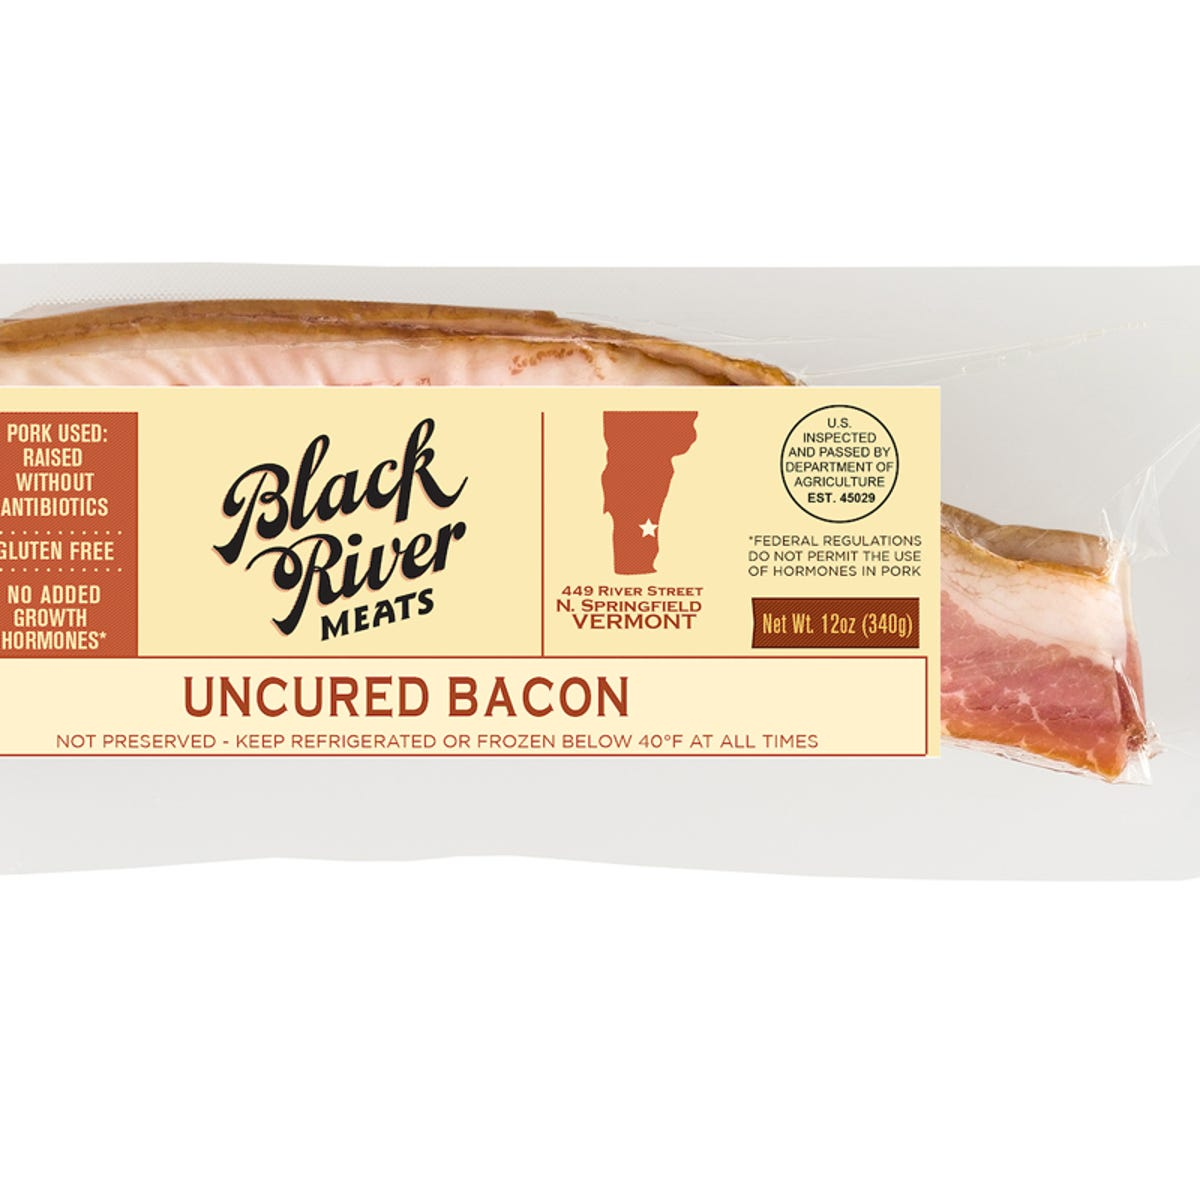 VT bacon goes national for packaging humor, jab at education system